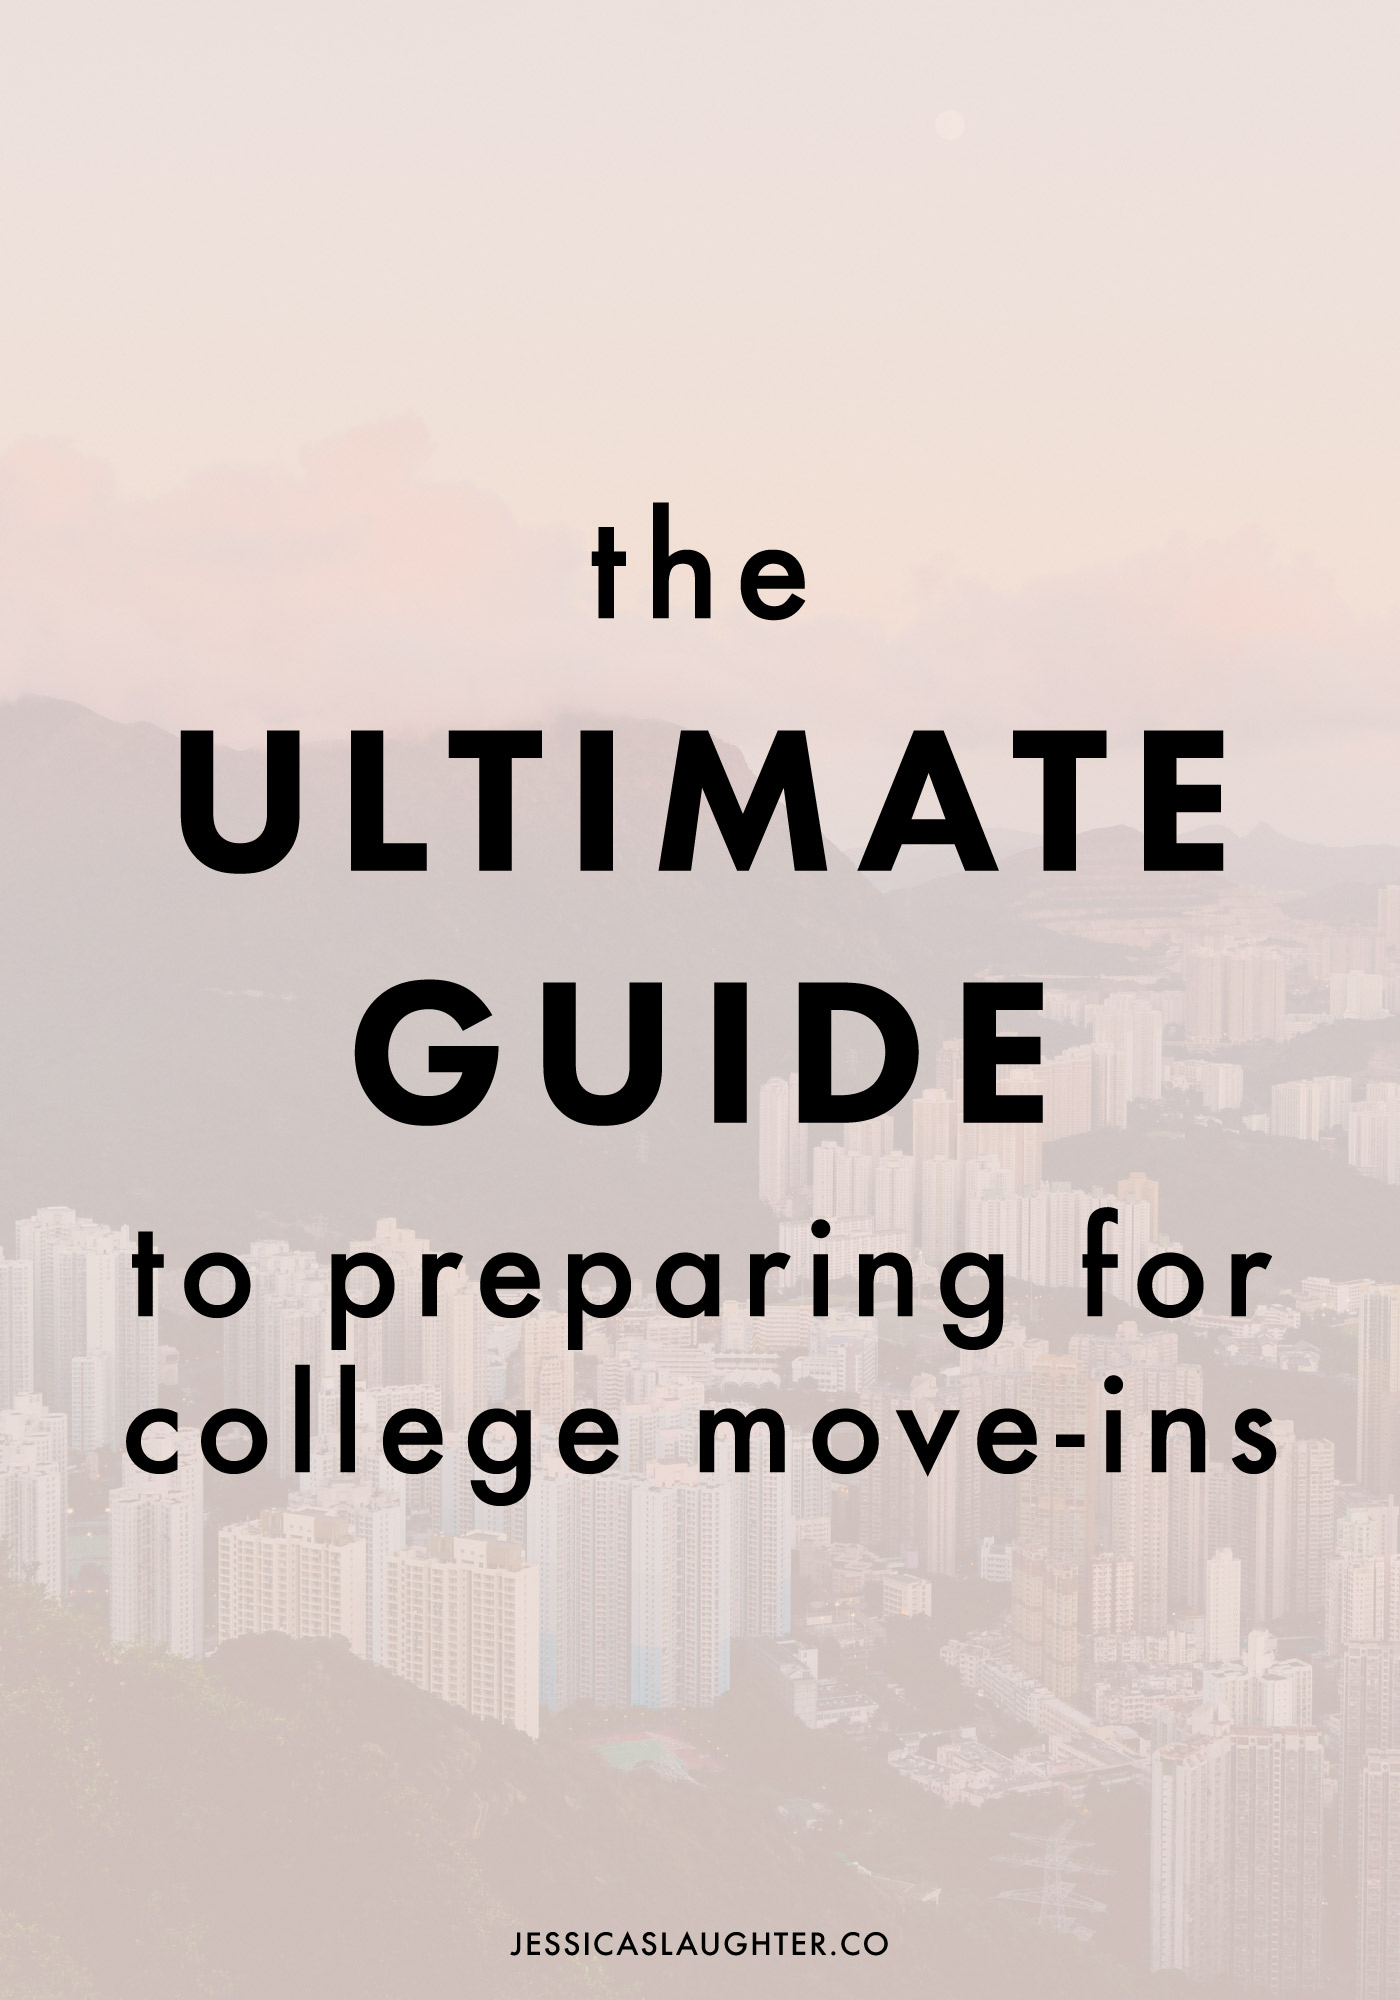 There's a lot you need to know before move-in day, so I packed it all into this post along with some extra tricks that got me through two move-ins!